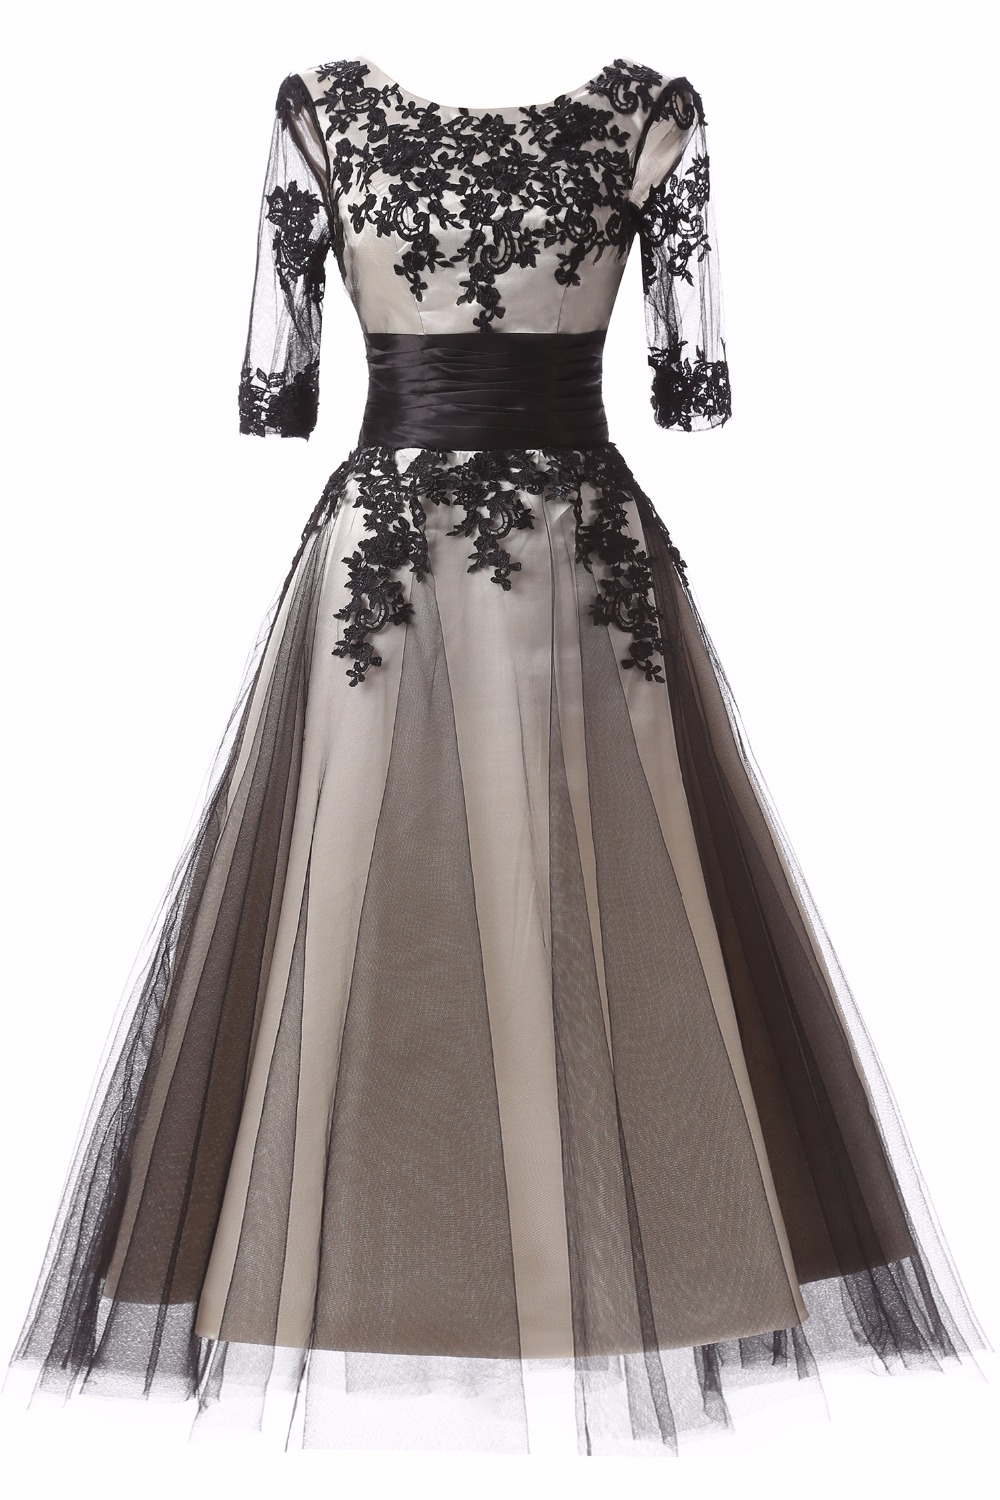 Online Buy Wholesale 2010 homecoming dresses from China 2010 ...